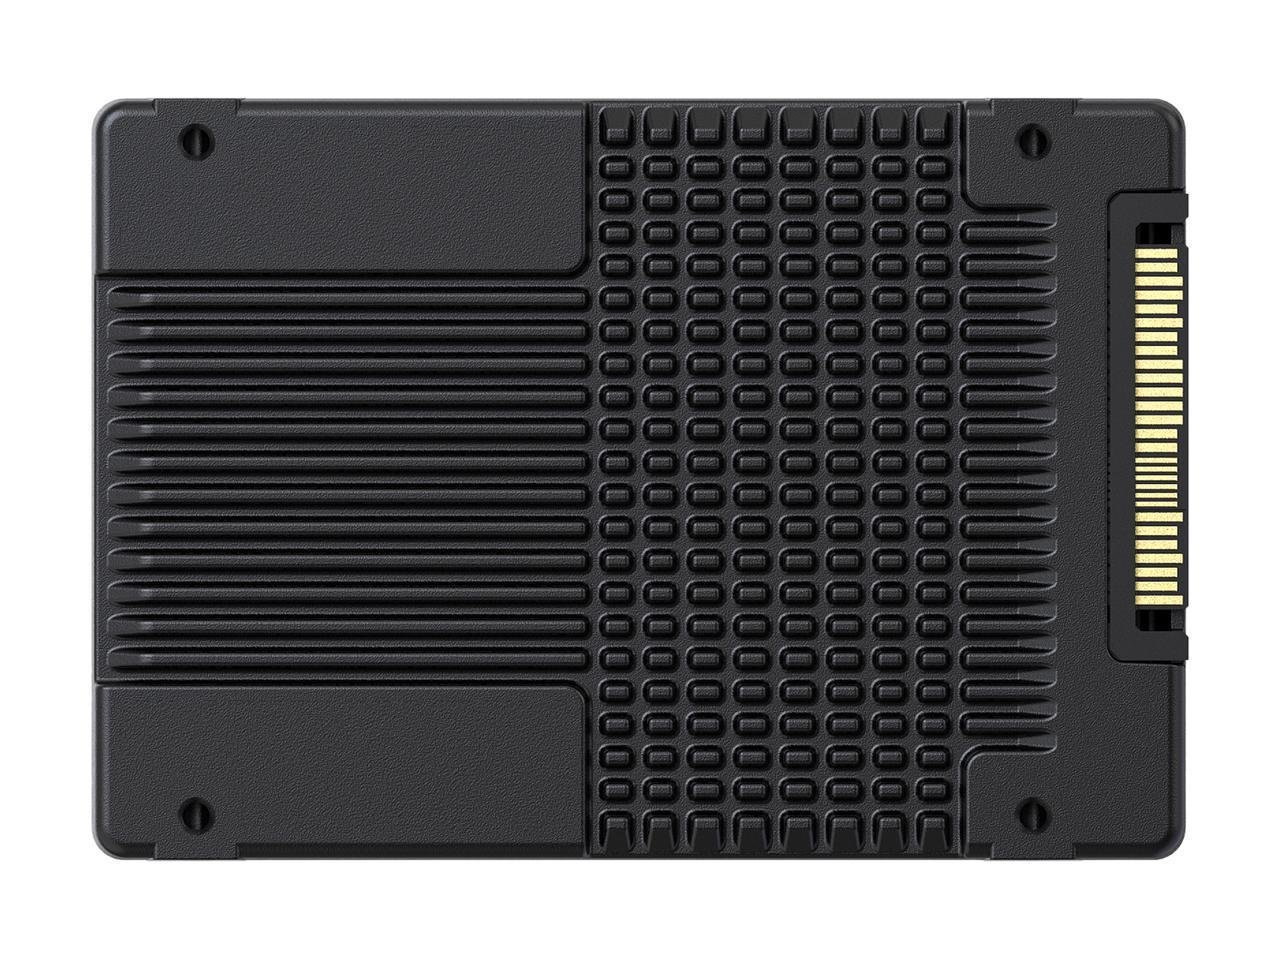 Intel Optane SSD 905P als U.2-Version